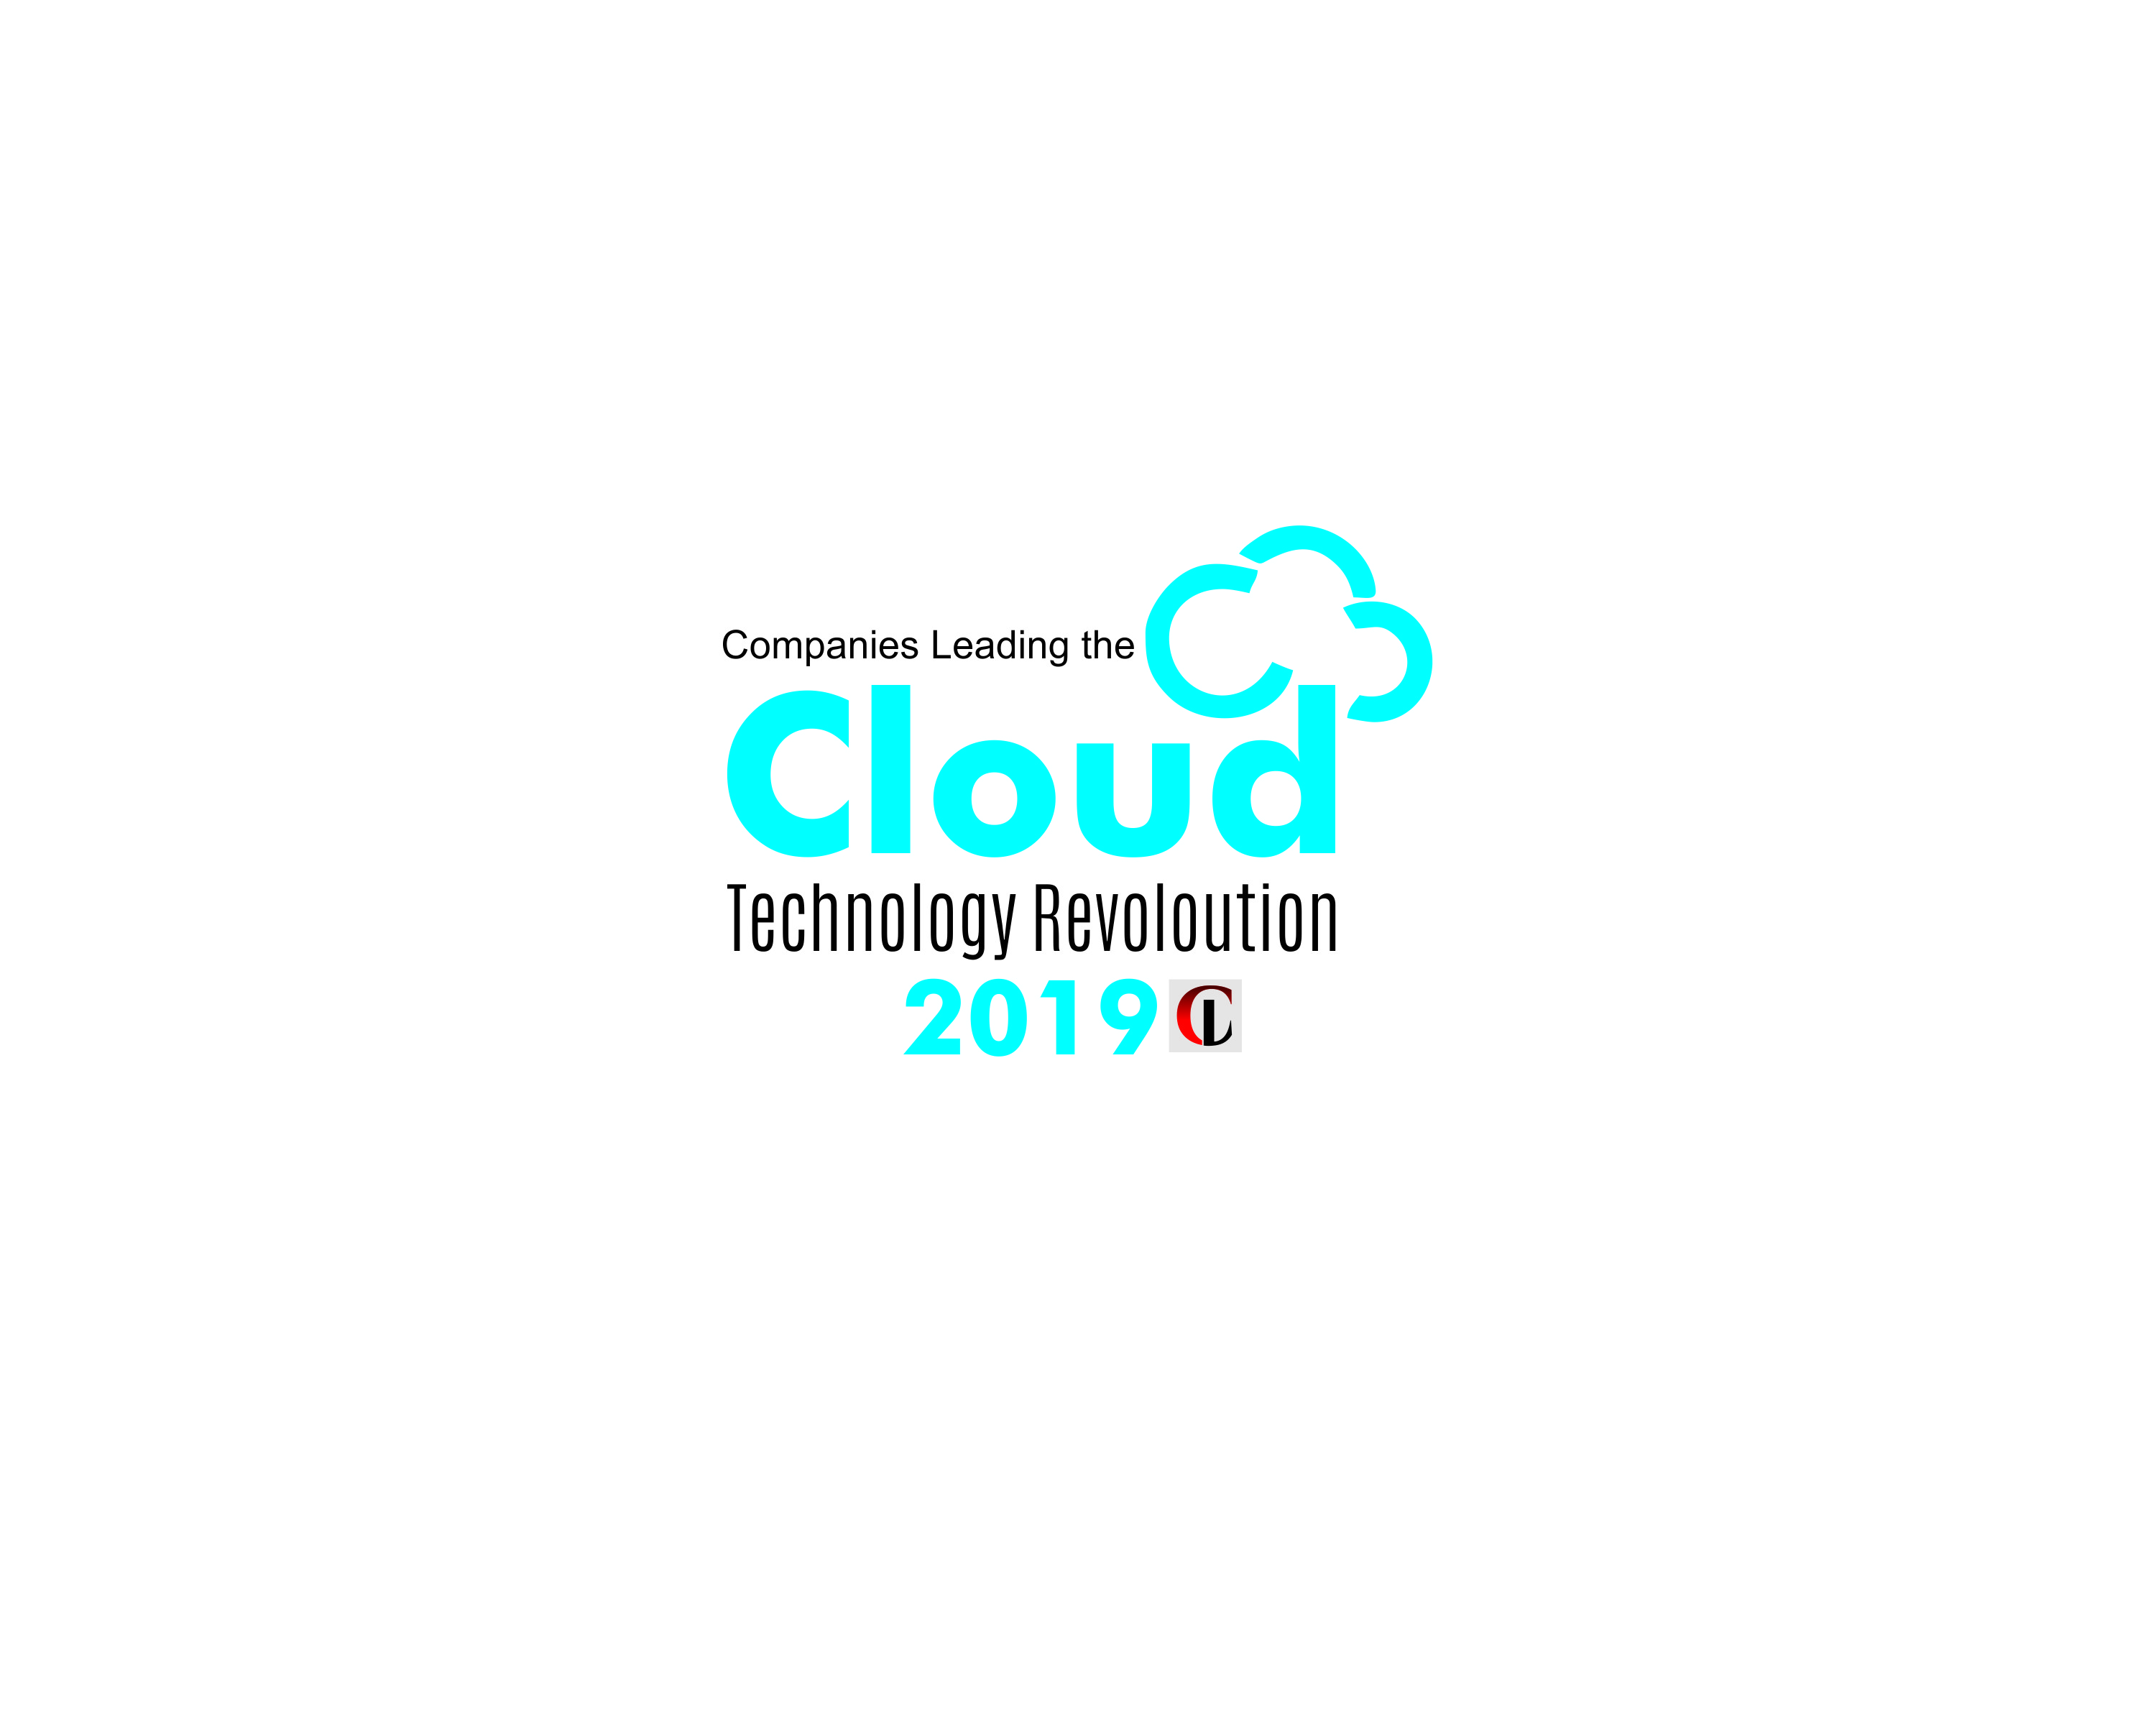 Companies Leading the Cloud Technology Revolution 2019